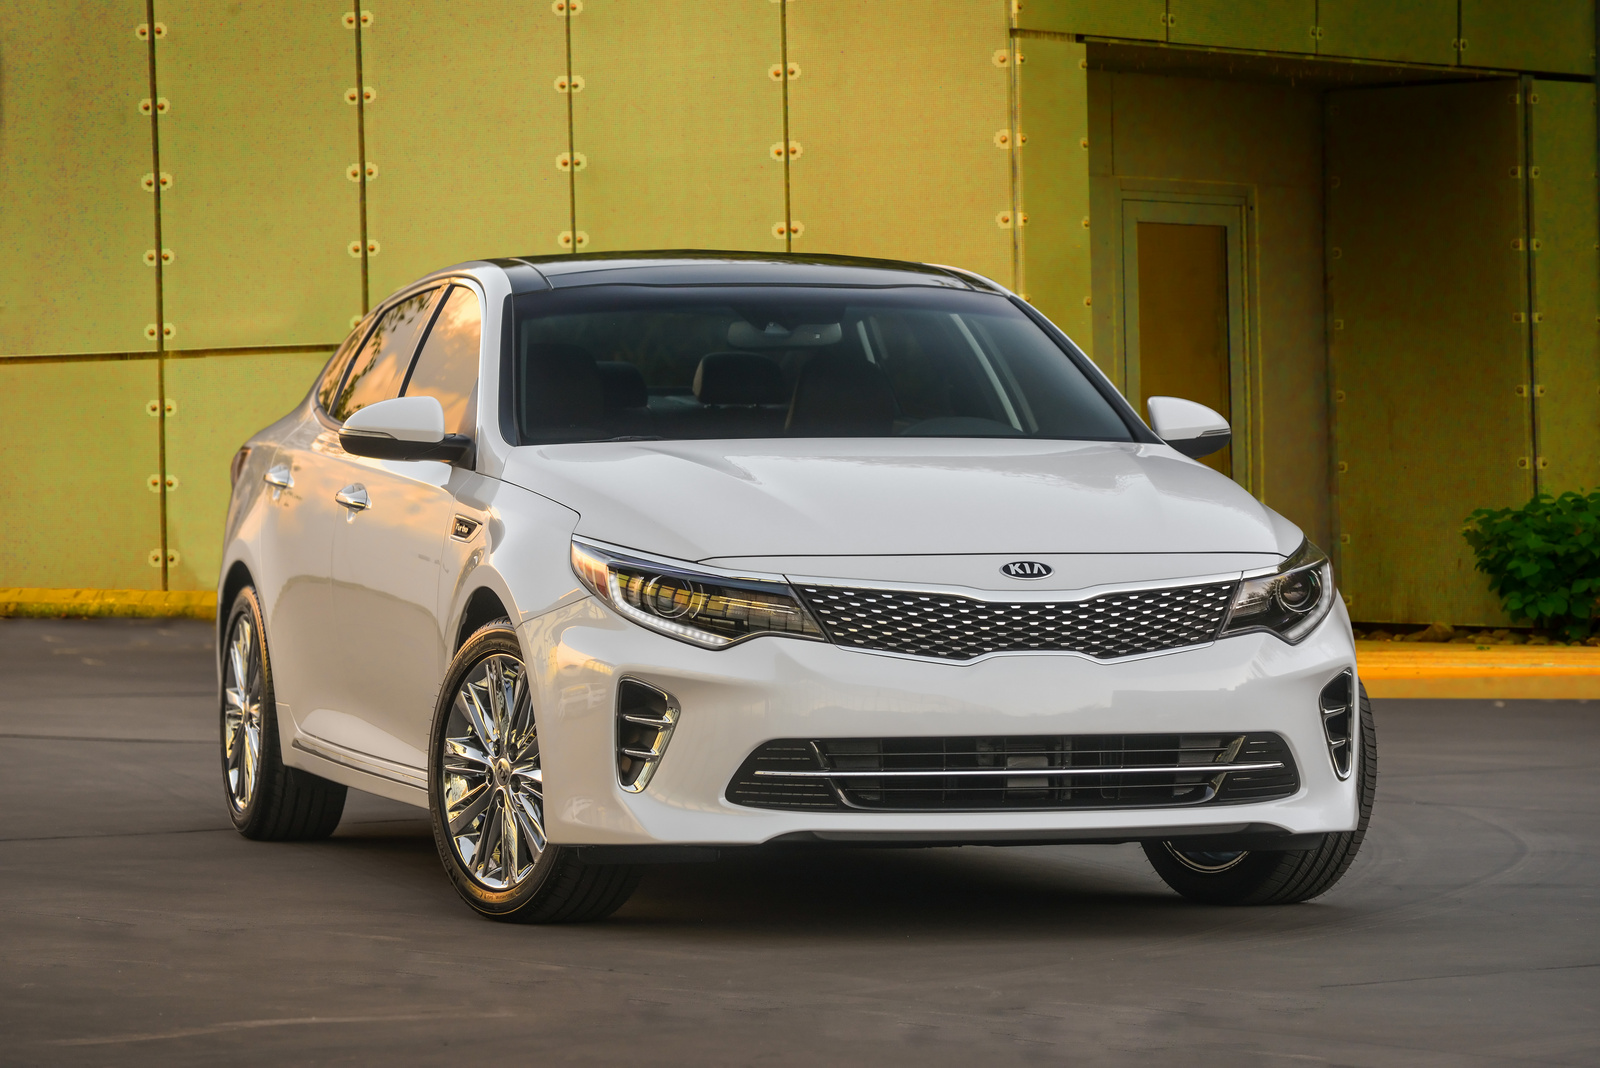 2016 Kia Optima Sx Turbo >> 2016 Kia Optima - Review - CarGurus